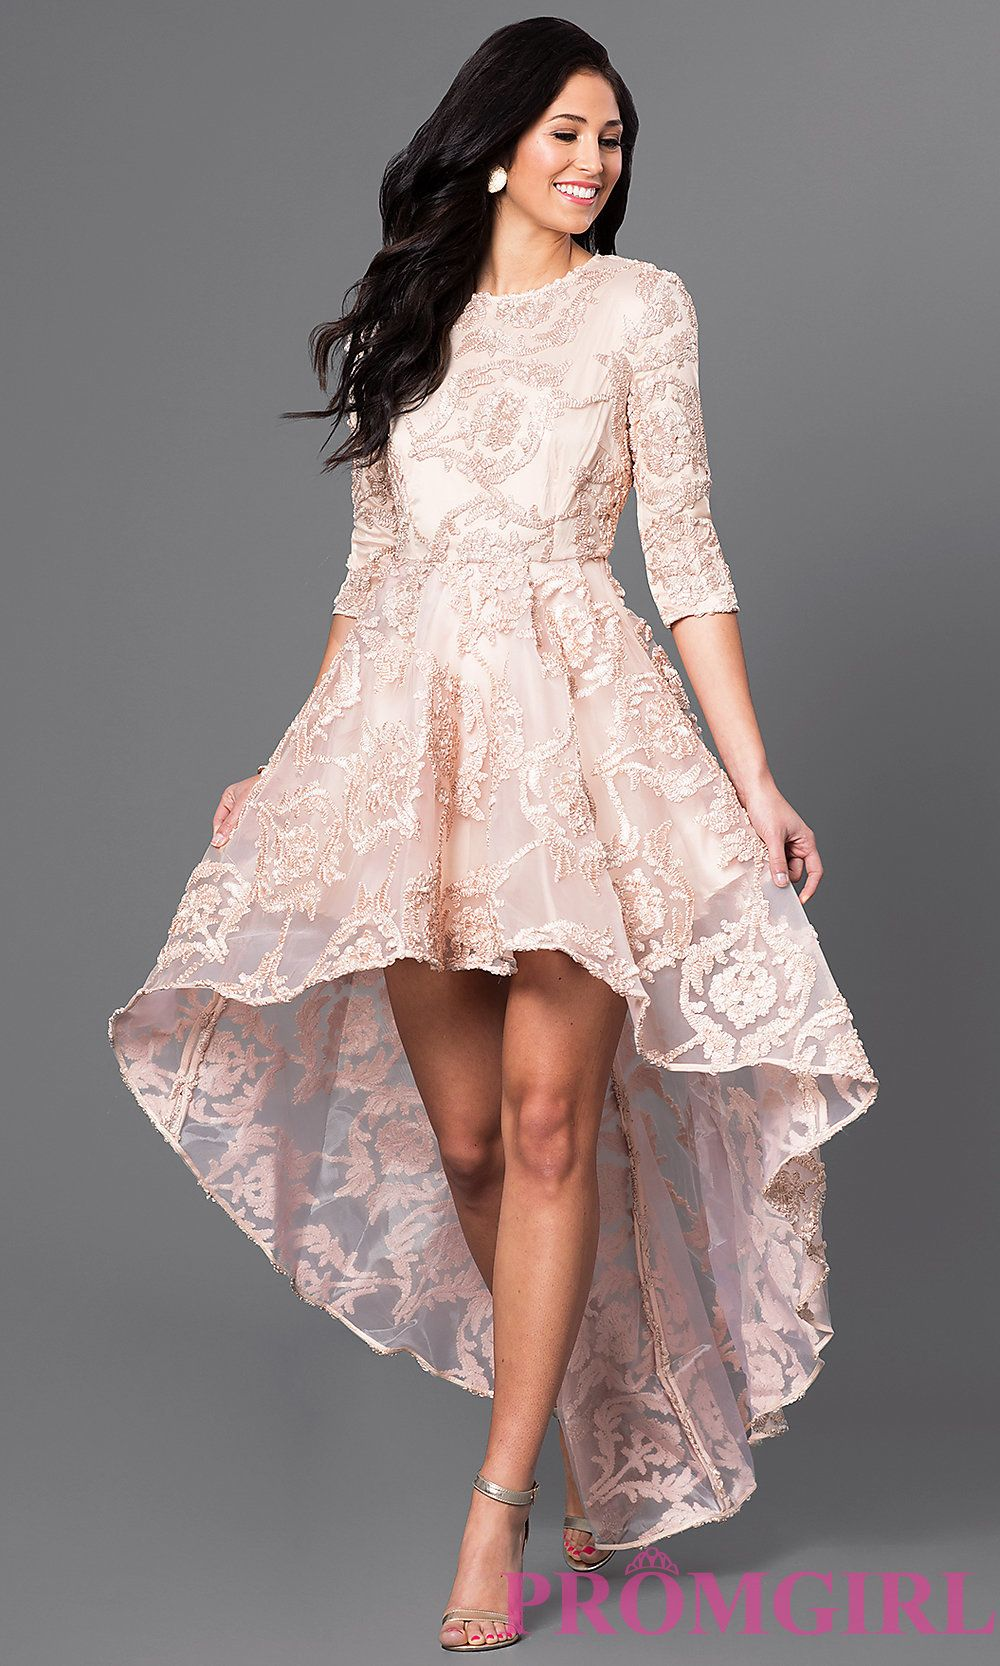 How To Wear High Low Lace Dress